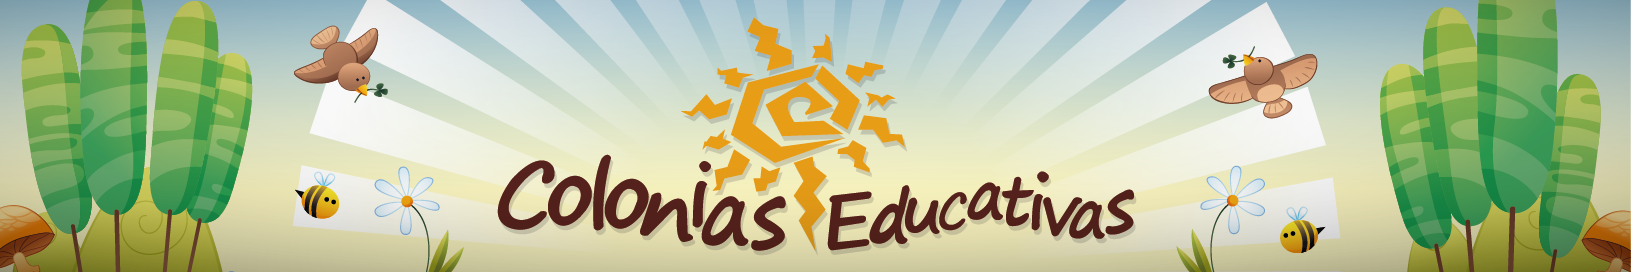 Colonias Educativas